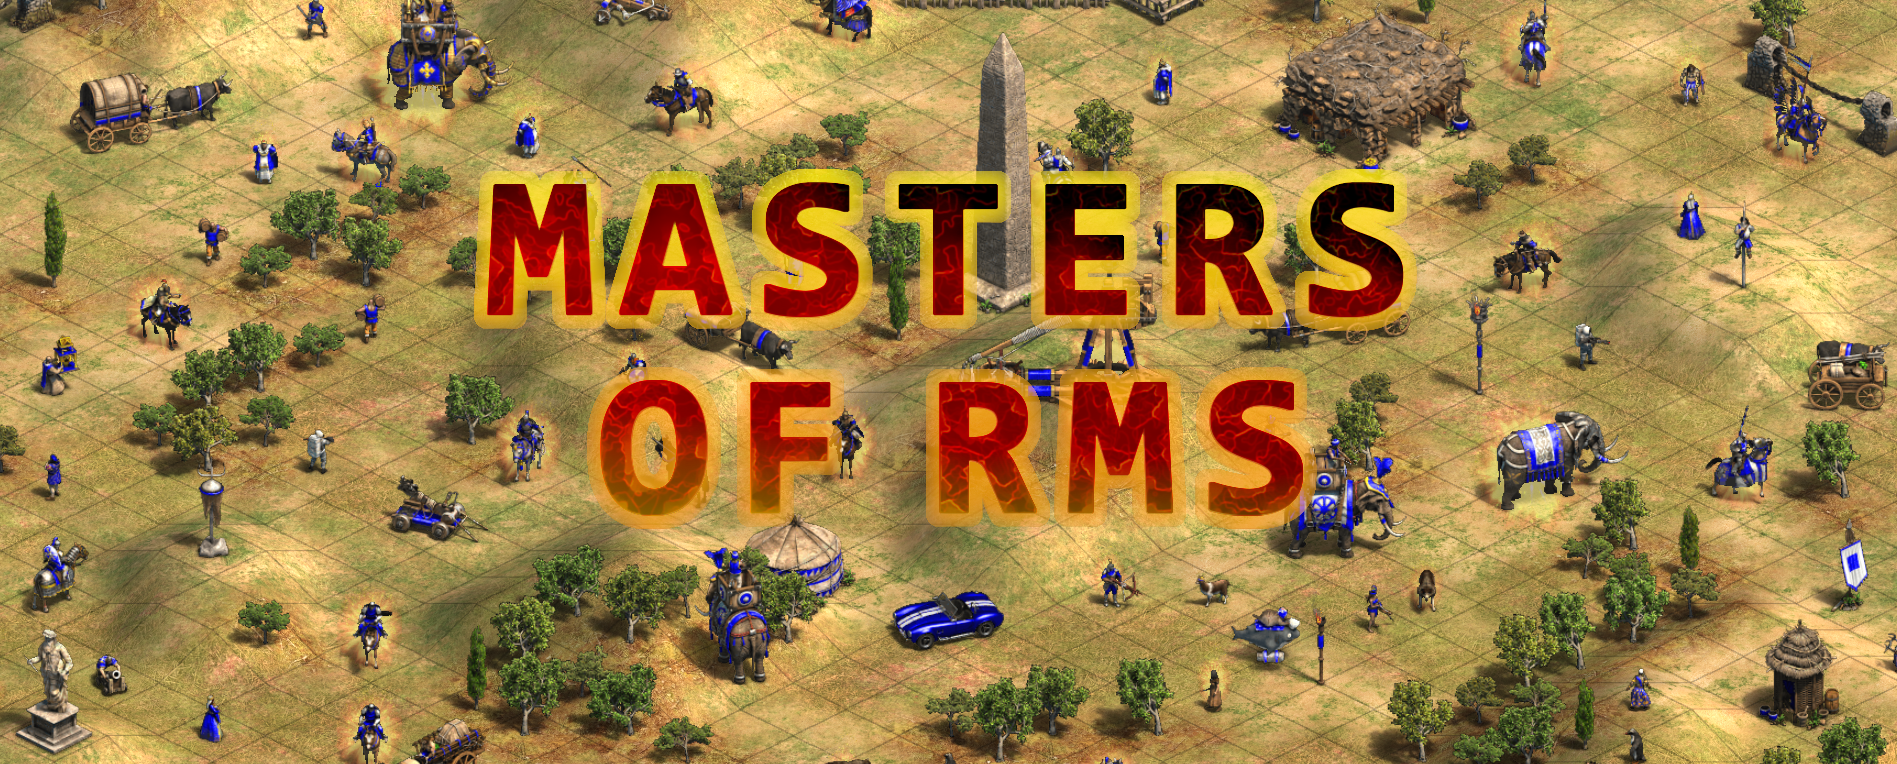 Masters of RMS logo.png